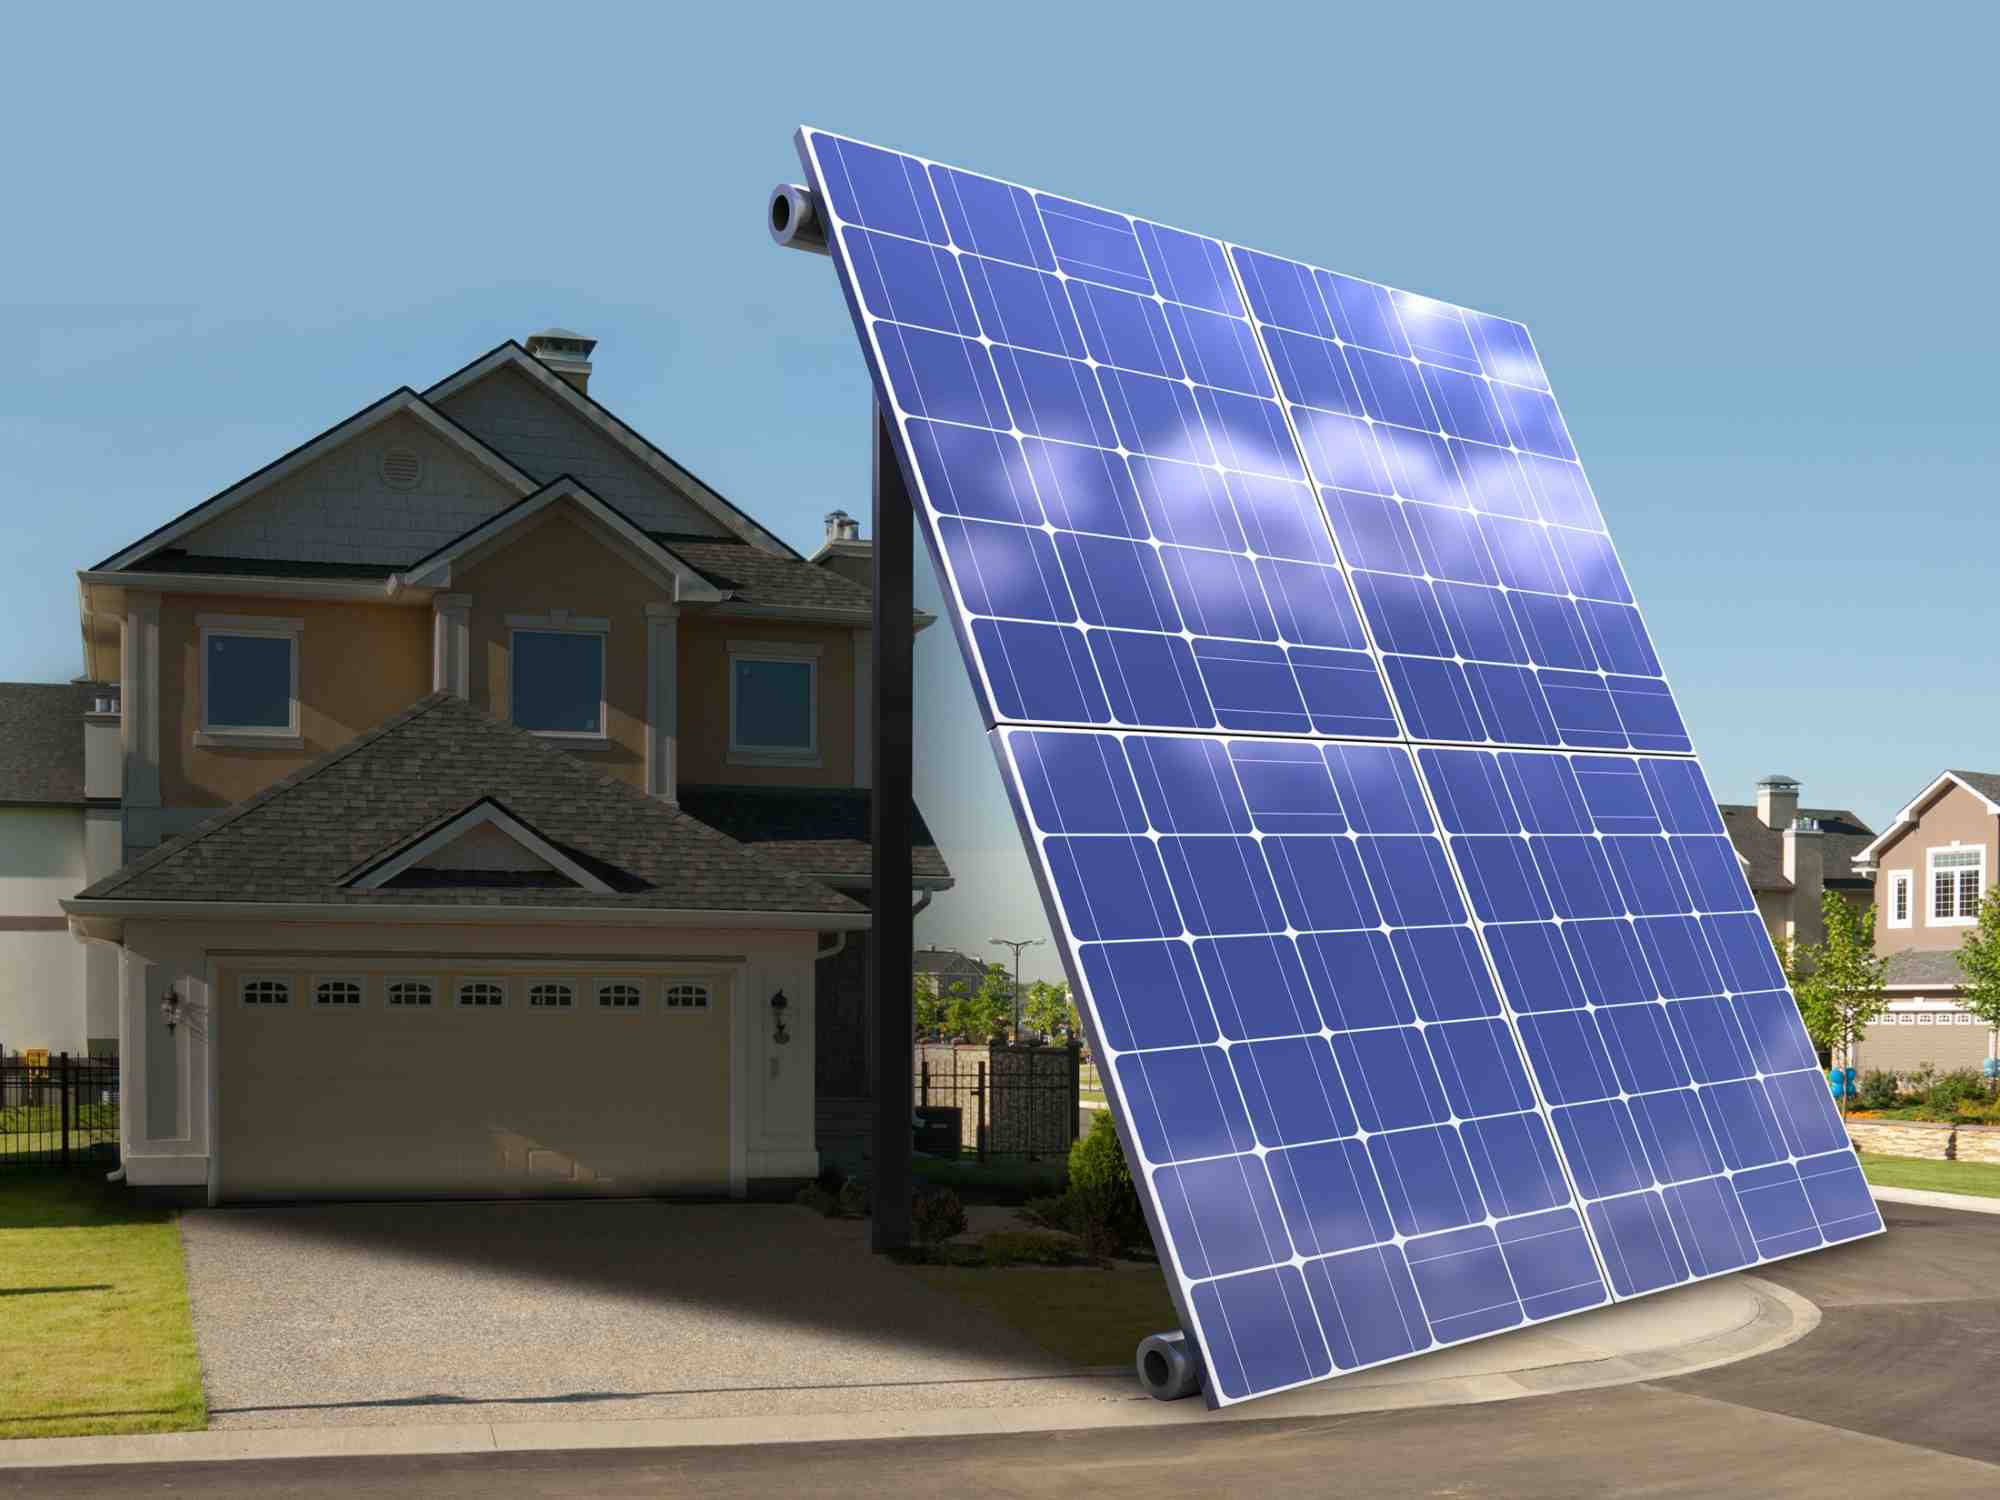 What is the solar power?